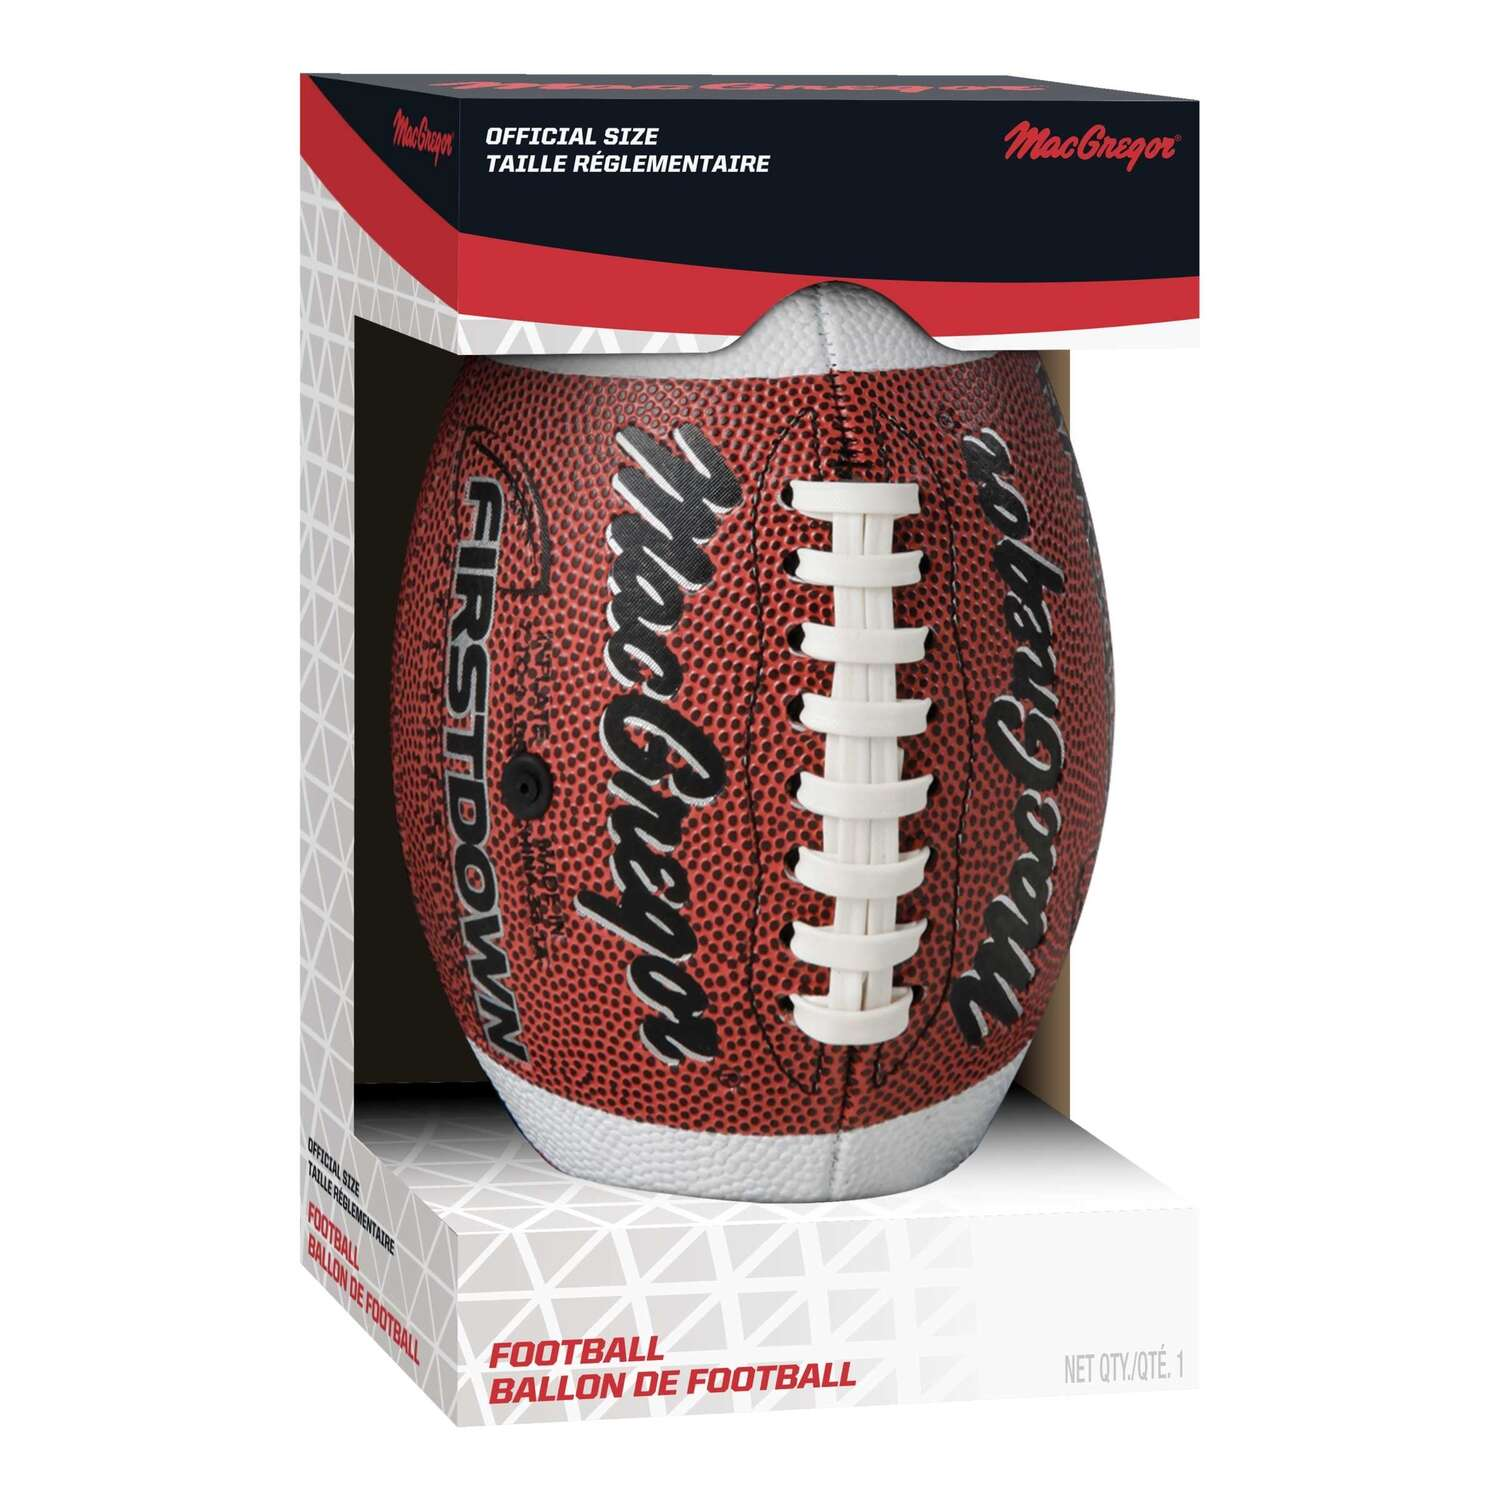 MacGregor  Firstdown  Size 7  10-12 year Football